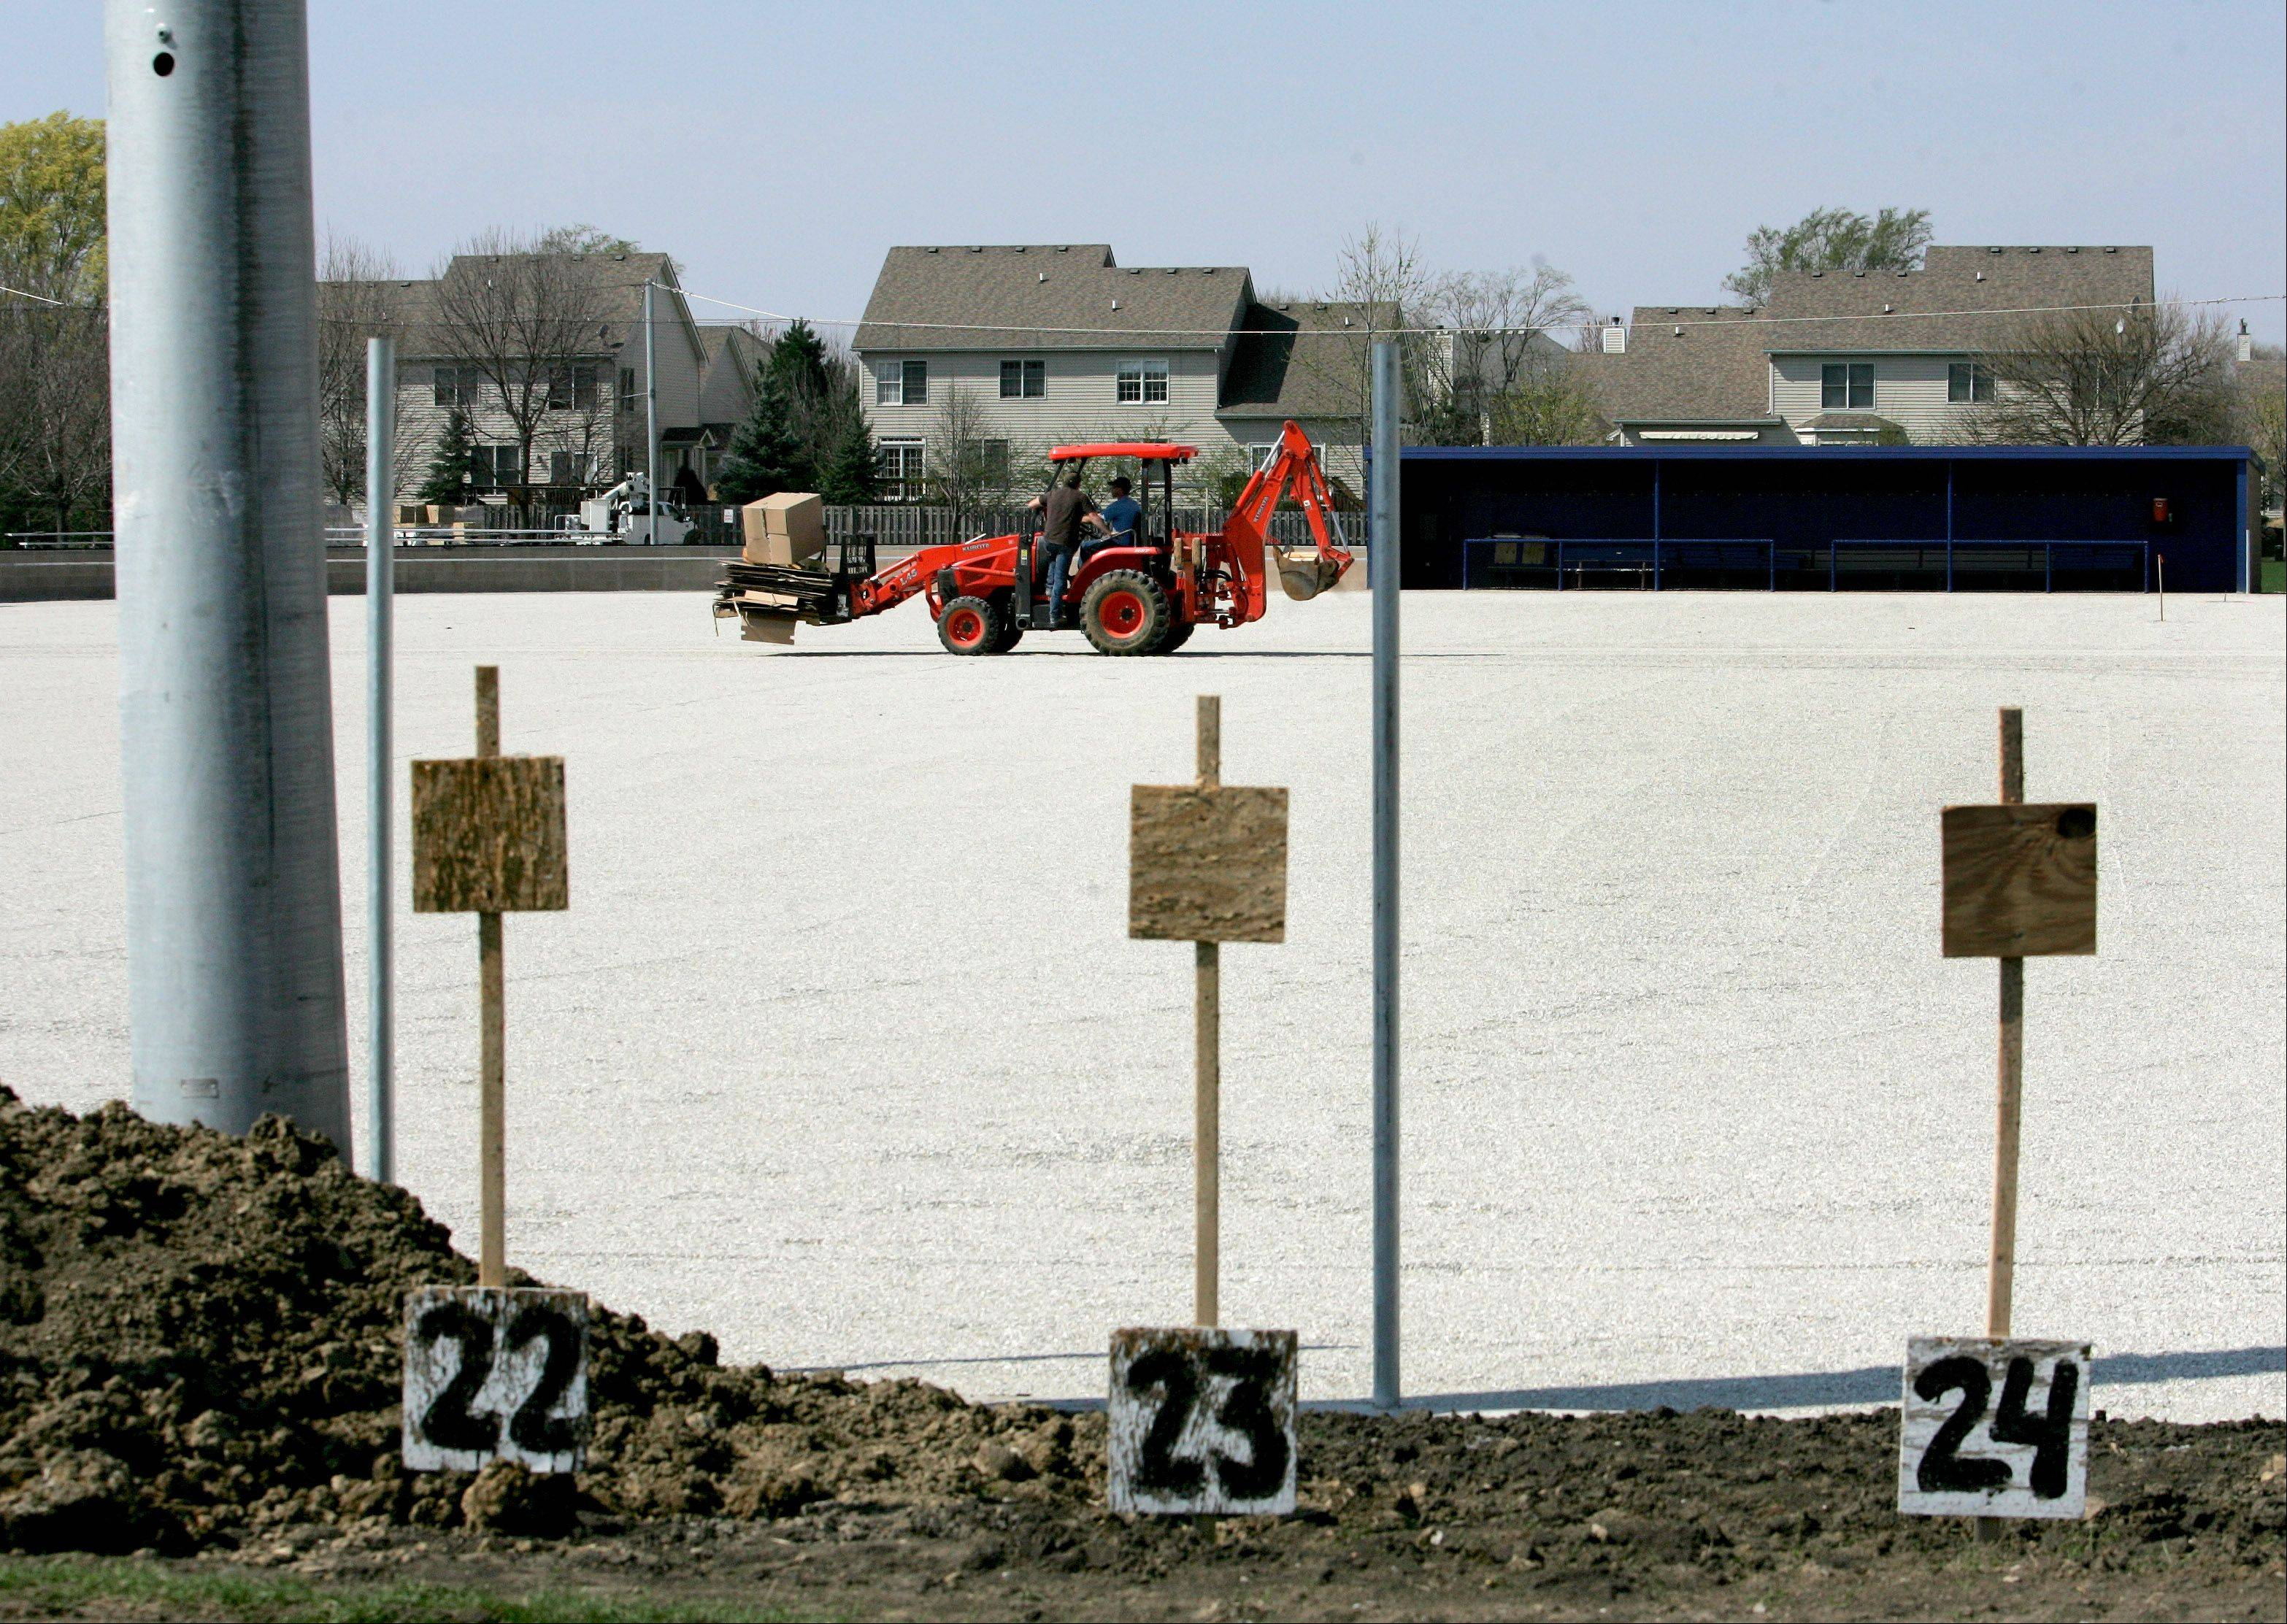 Artificial field turf and lights are being added to the baseball field behind the American Legion post in Carol Stream as part of a $3 million upgrade by Wheaton College, whose baseball team will play home games there.